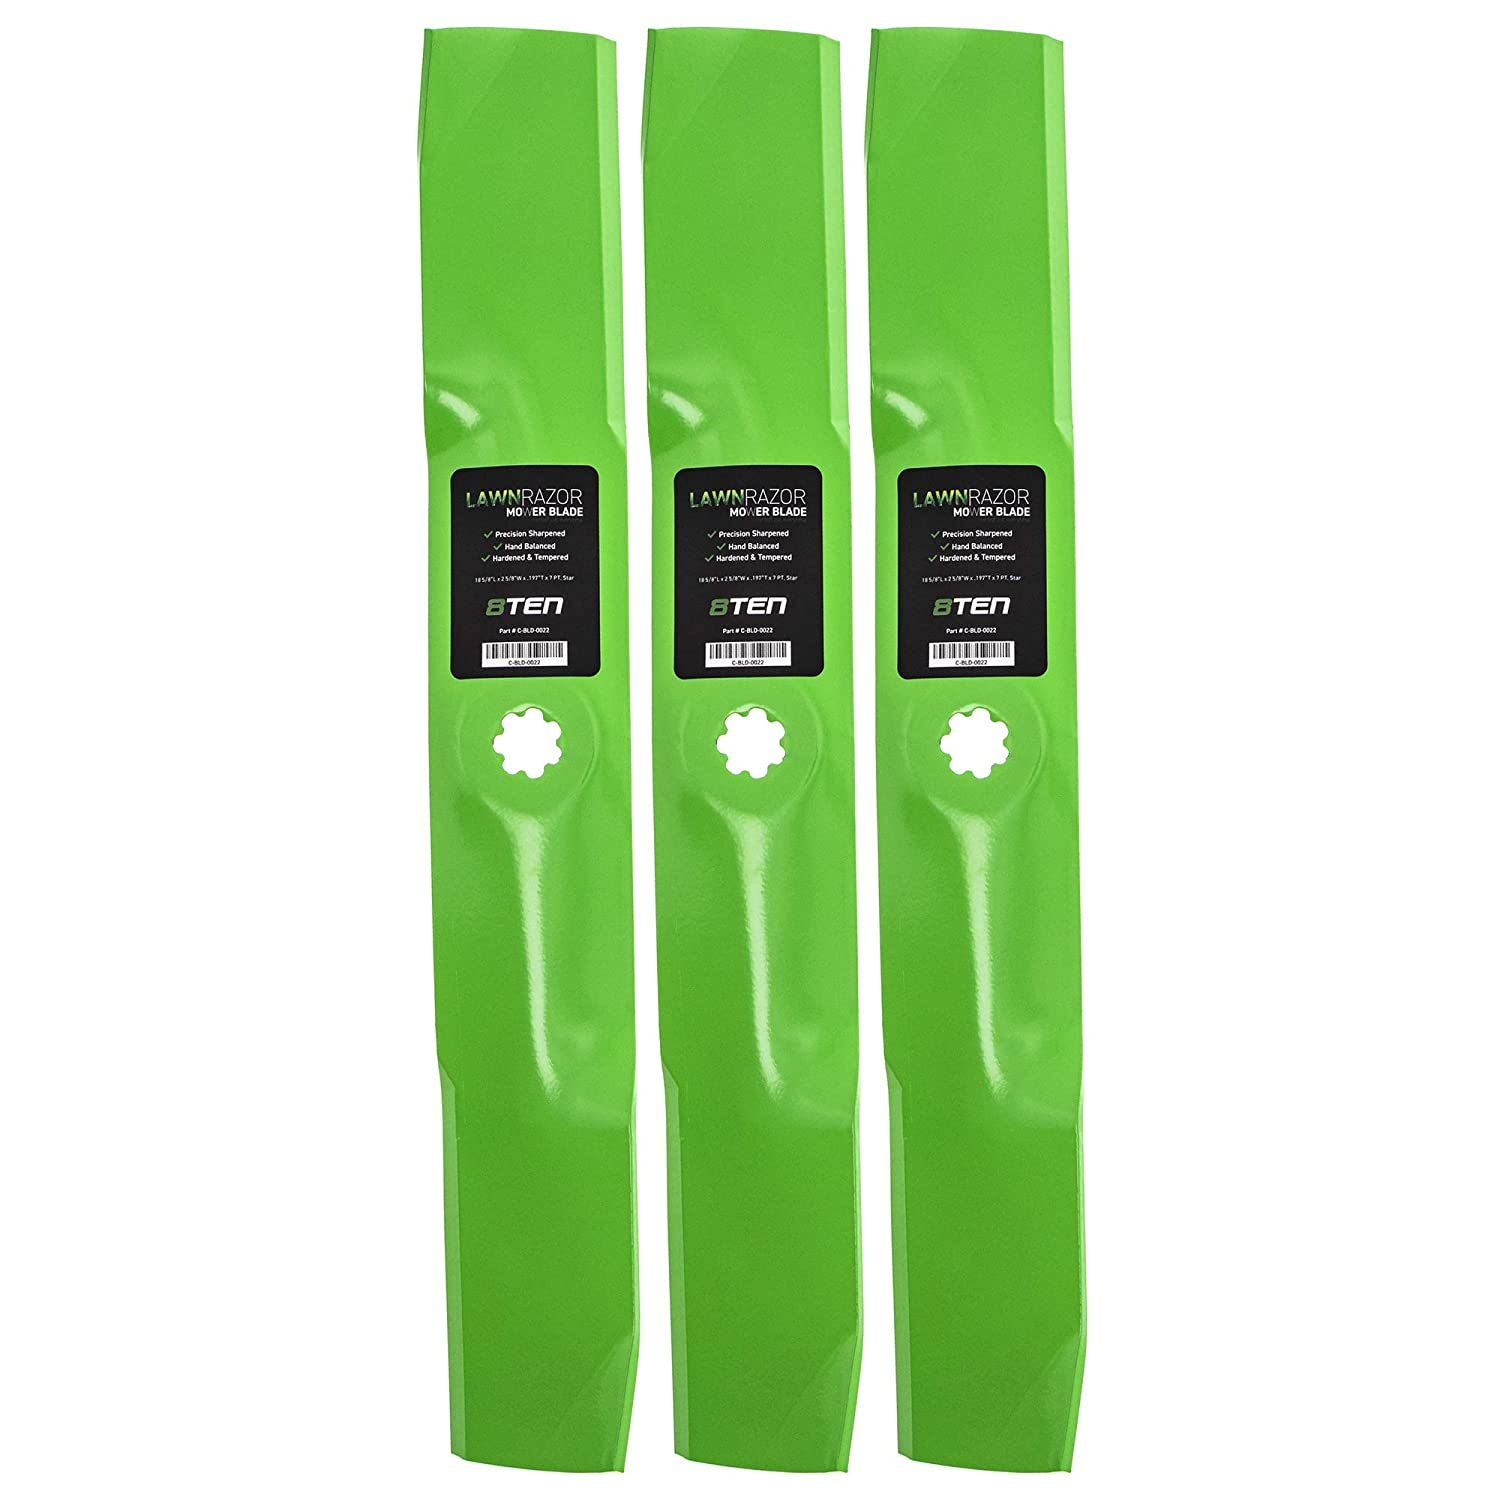 8TEN LawnRAZOR Medium Lift Blade for Craftsman John Deere 54 Inch Deck Replaces GX21380 GY20679 GY20684 GY20686 3 Pack